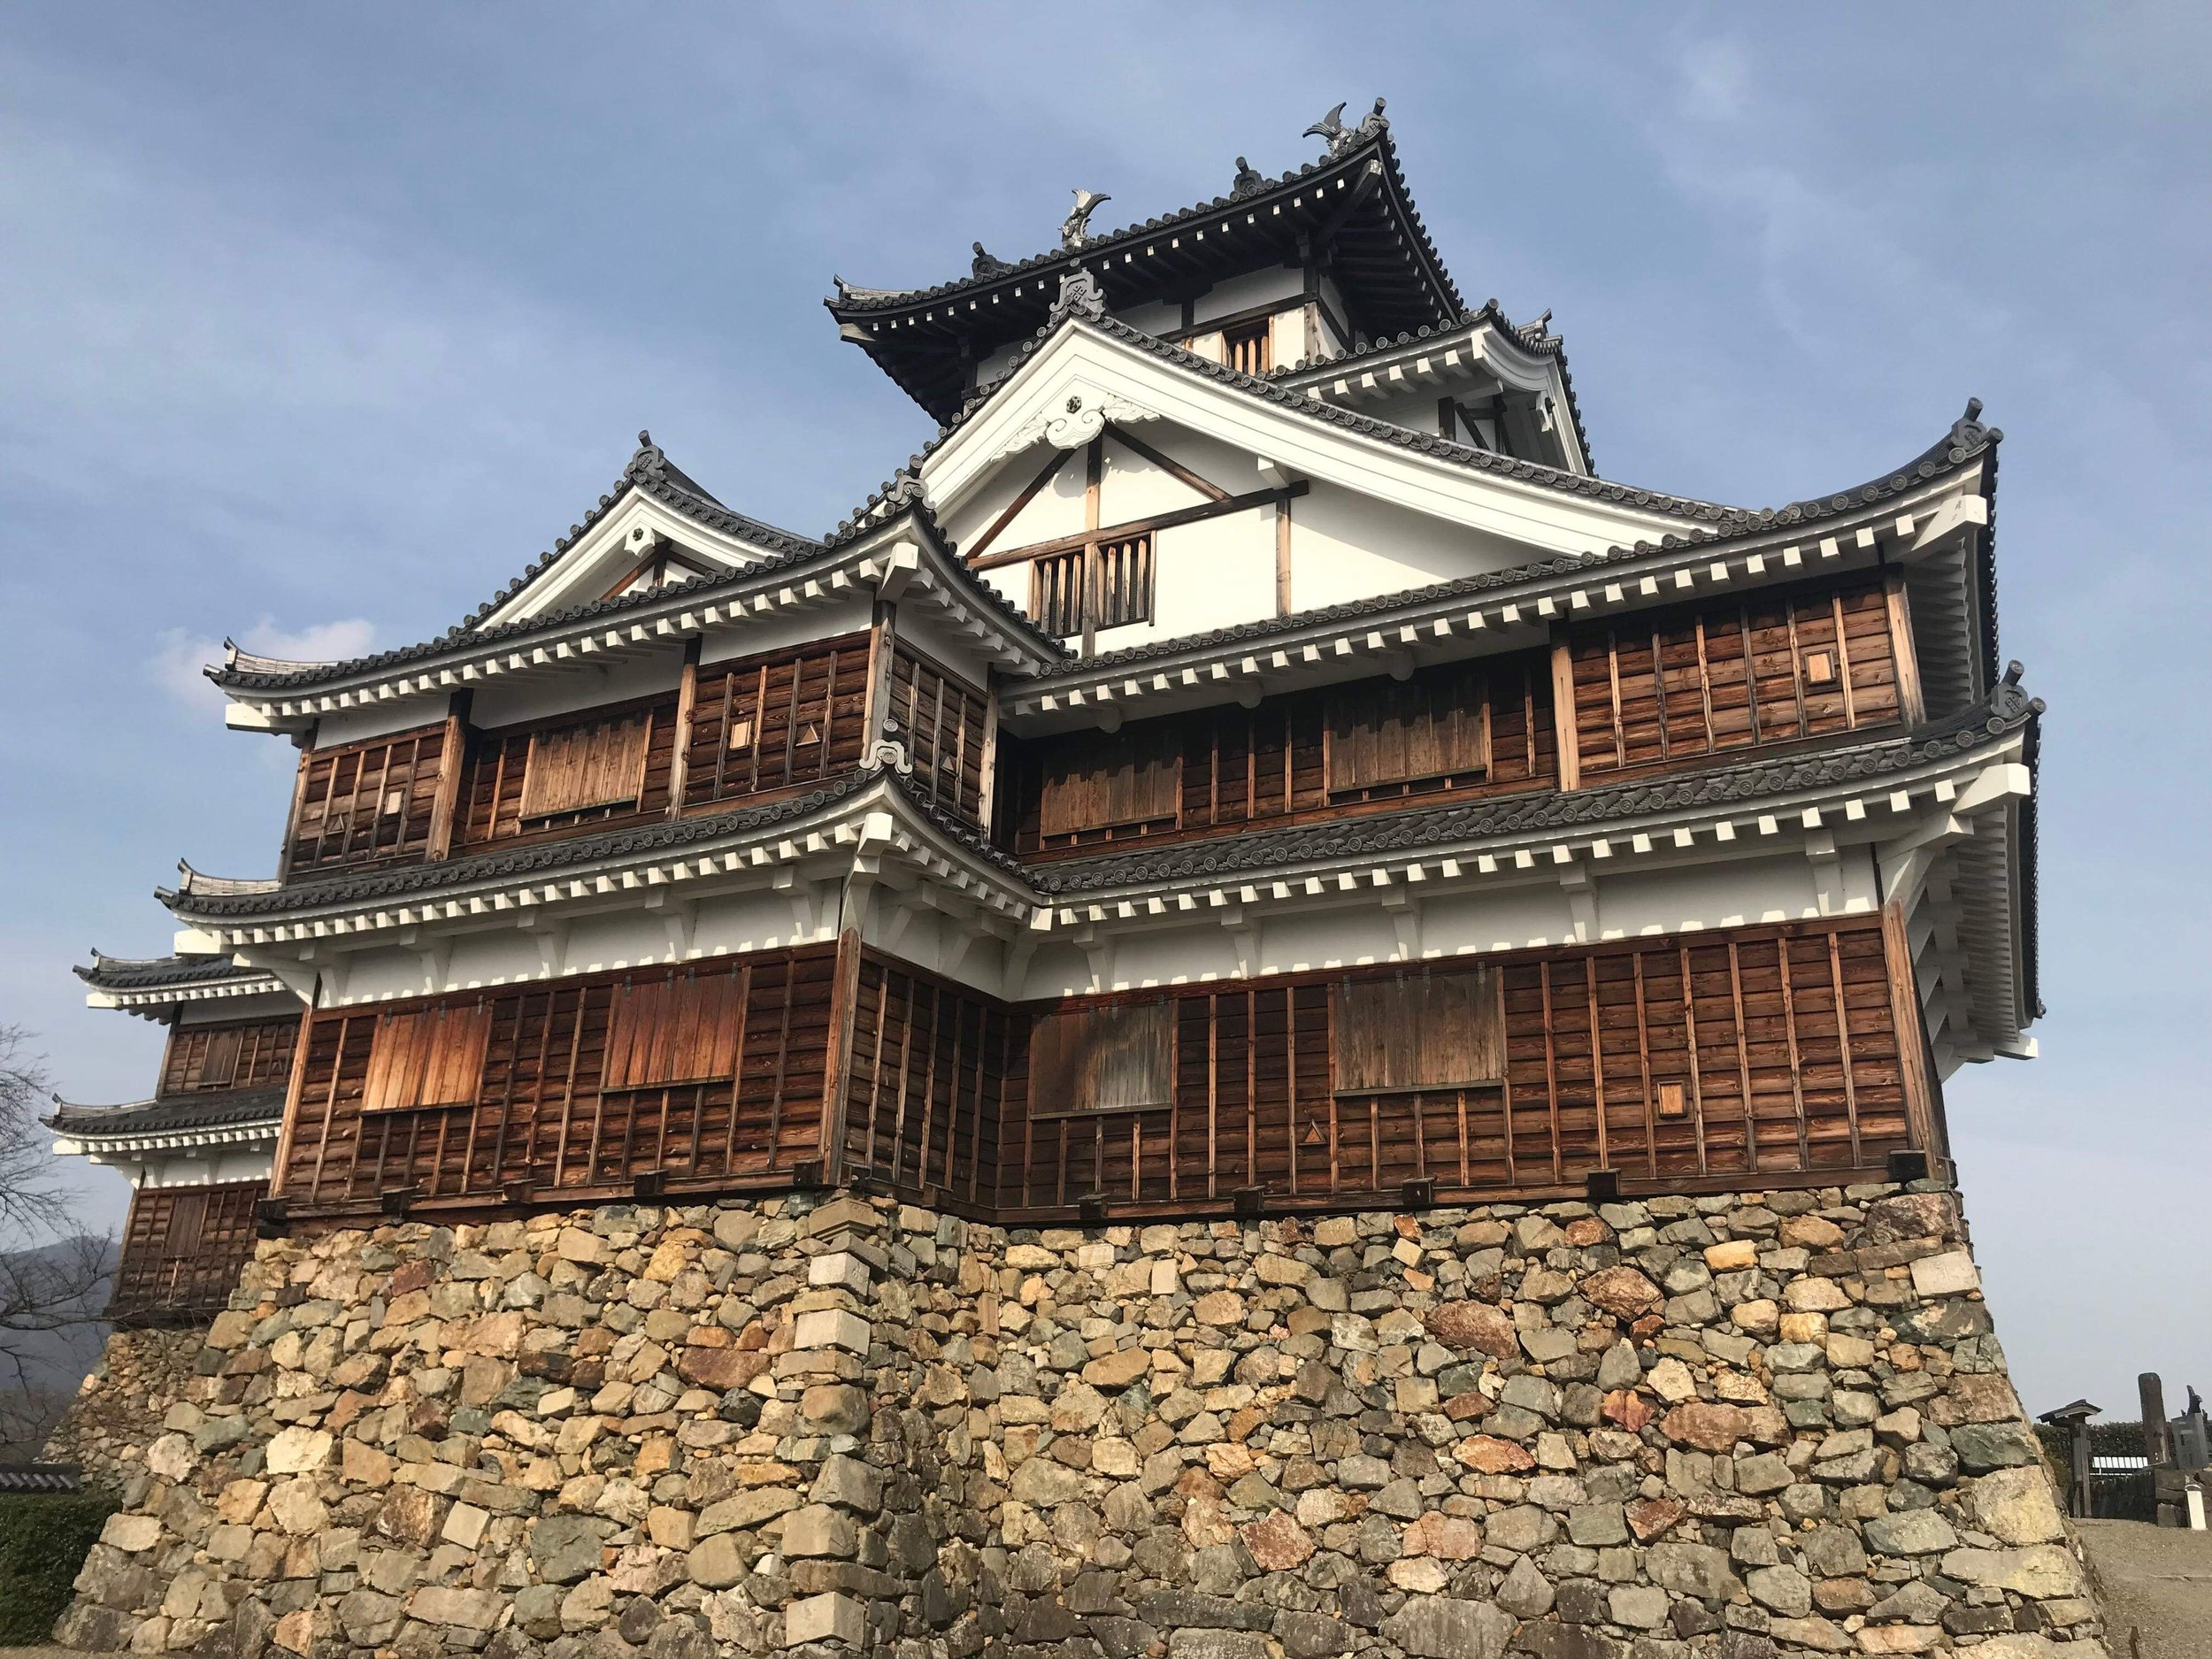 Fukuchiyama Castle, near Kyoto, was originally built in 1572 by the Yokoyama clan, but has been now rebuilt after its destruction in 1872 after attempts to modernize Japan failed.